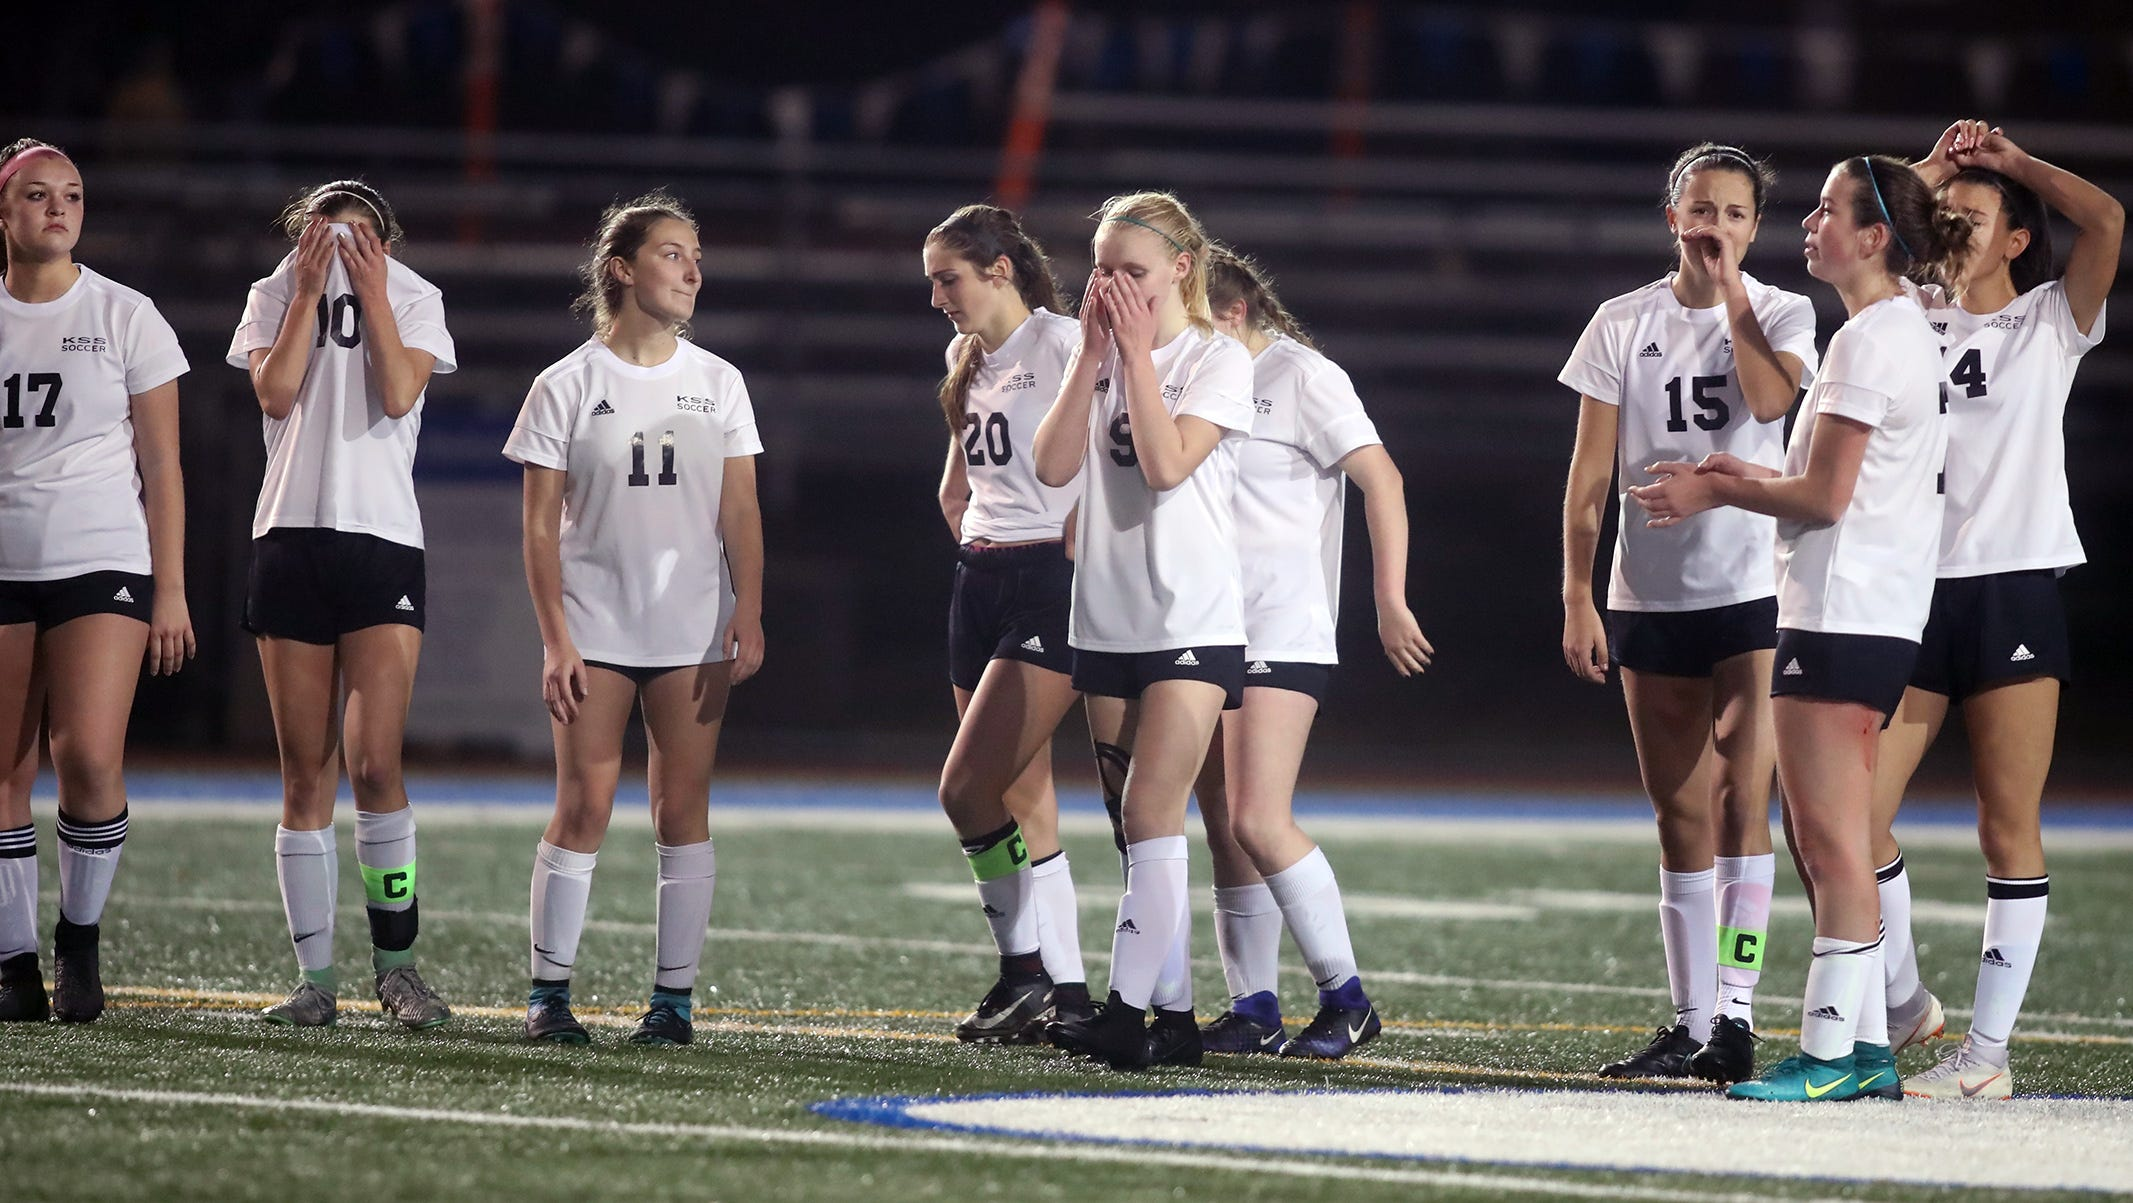 The Klahowya girls soccer shootout kickers react after they lost to King's Way on a shoot out in overtime in the 2018 Girls Soccer State Championship 1A semifinal game at Shoreline Stadium on Friday, November 16, 2018.